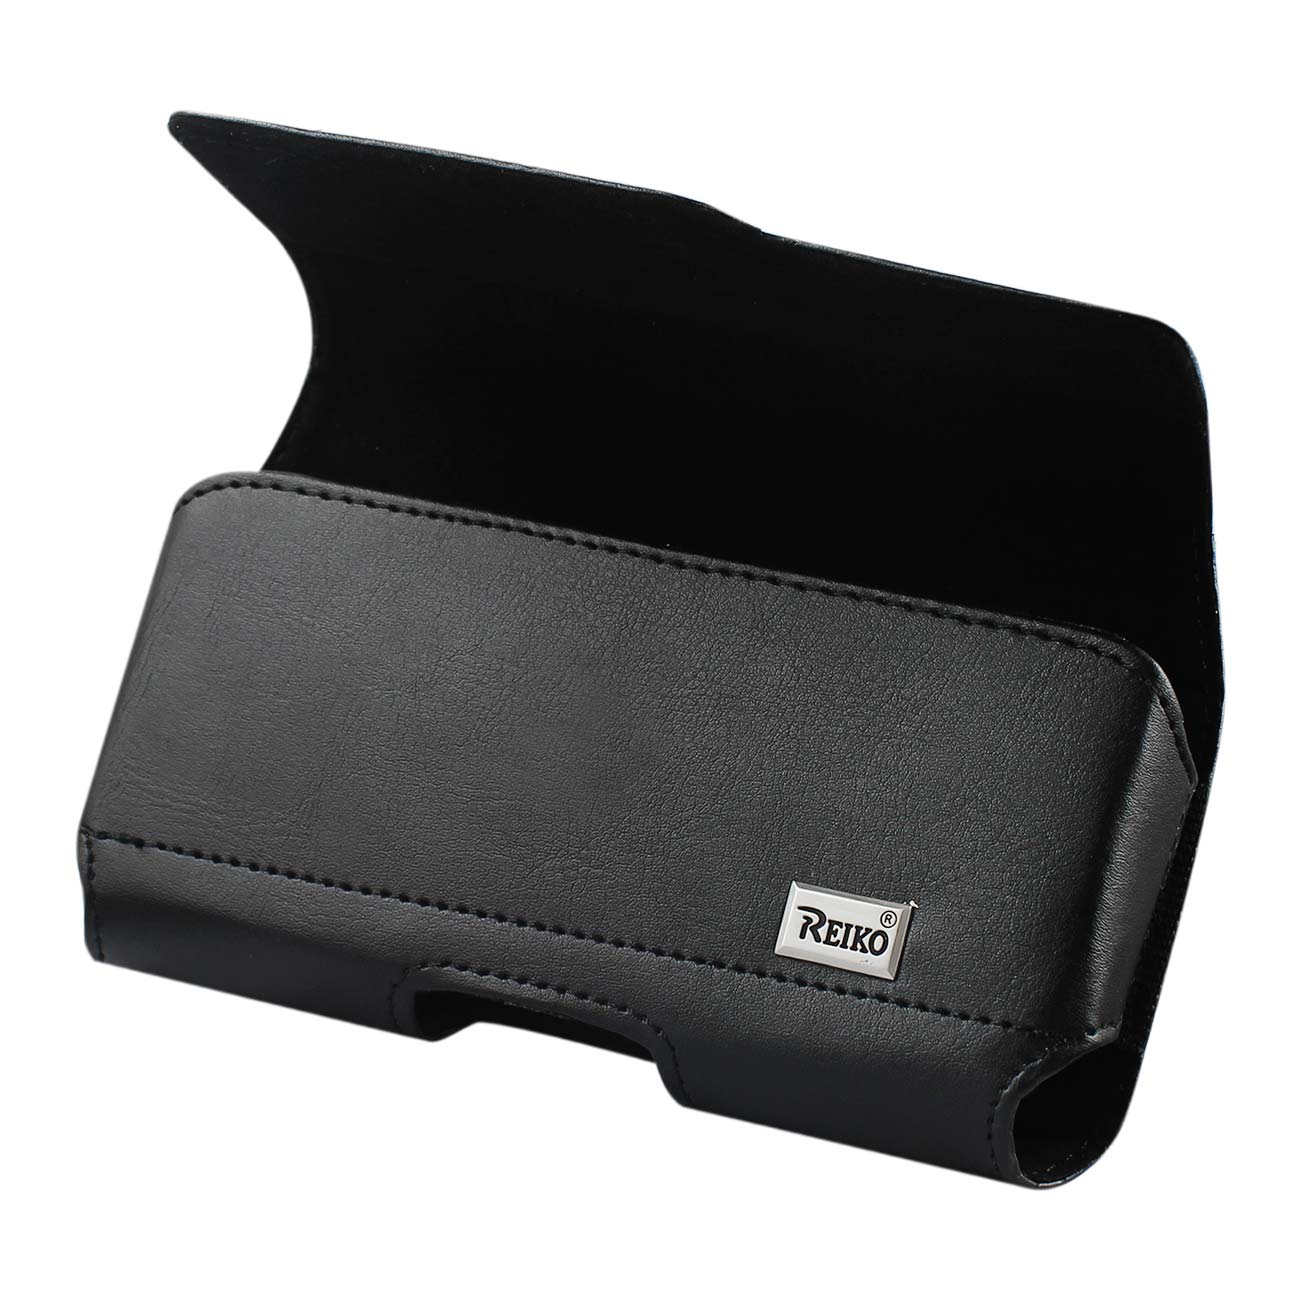 Horizontal Leather Pouch With Z Lid Pattern With Embossed Logo In Black (5.8X3.0X0.7 Inches)